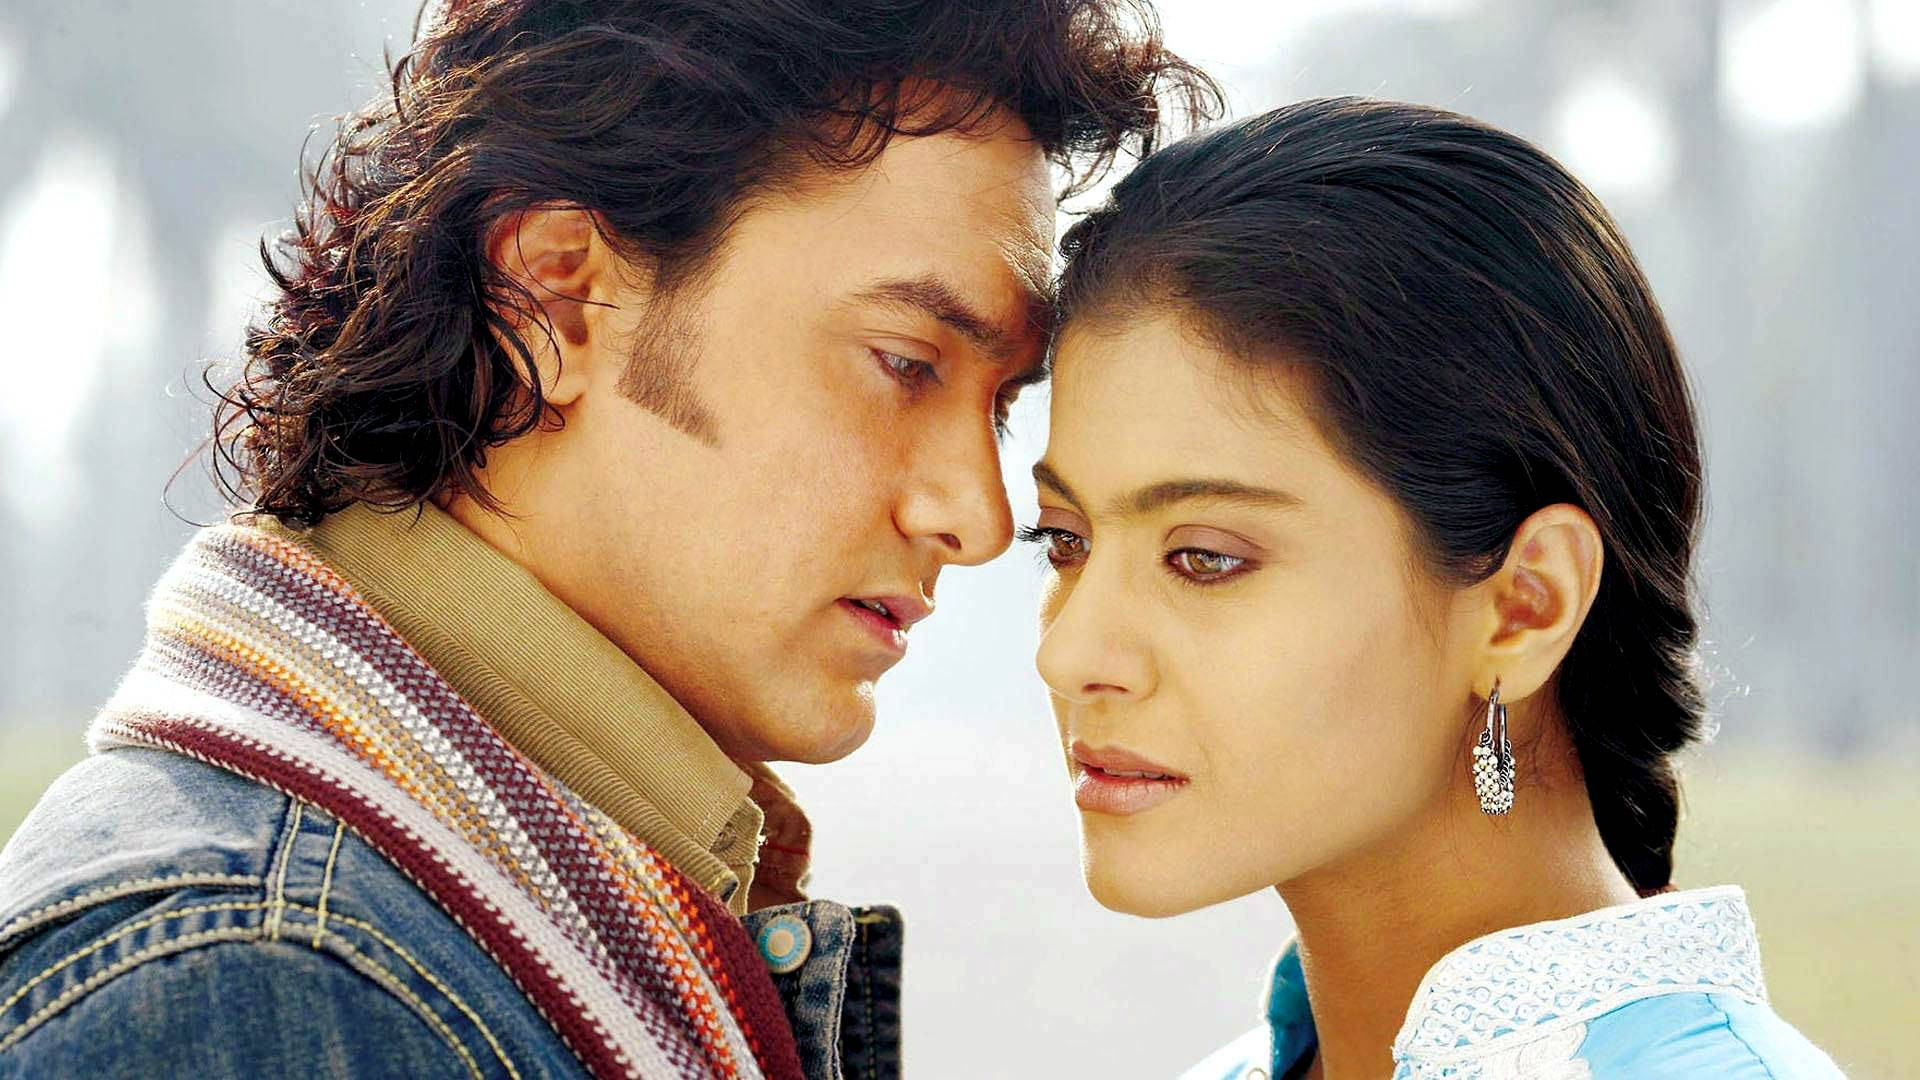 kajol in fanaa wallpaper background